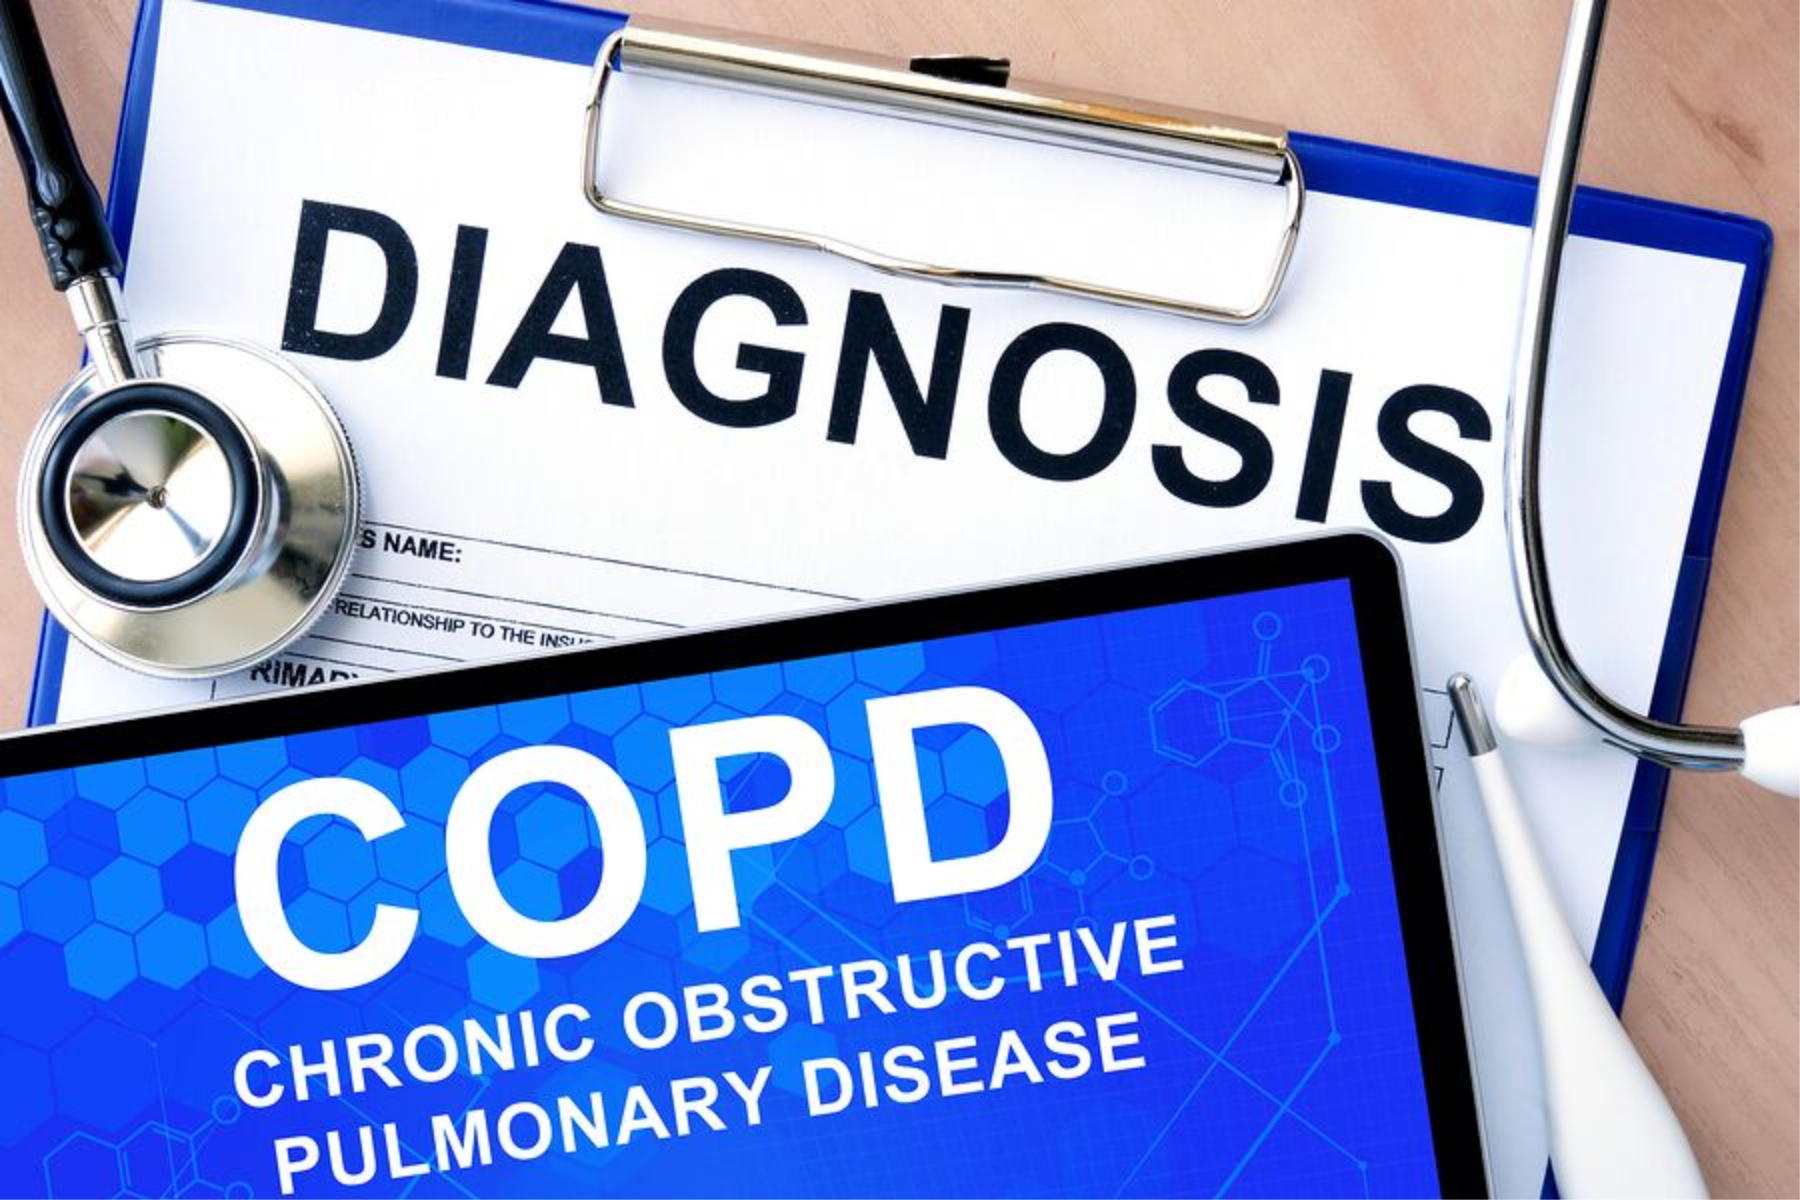 Home Care in Maywood NJ: COPD